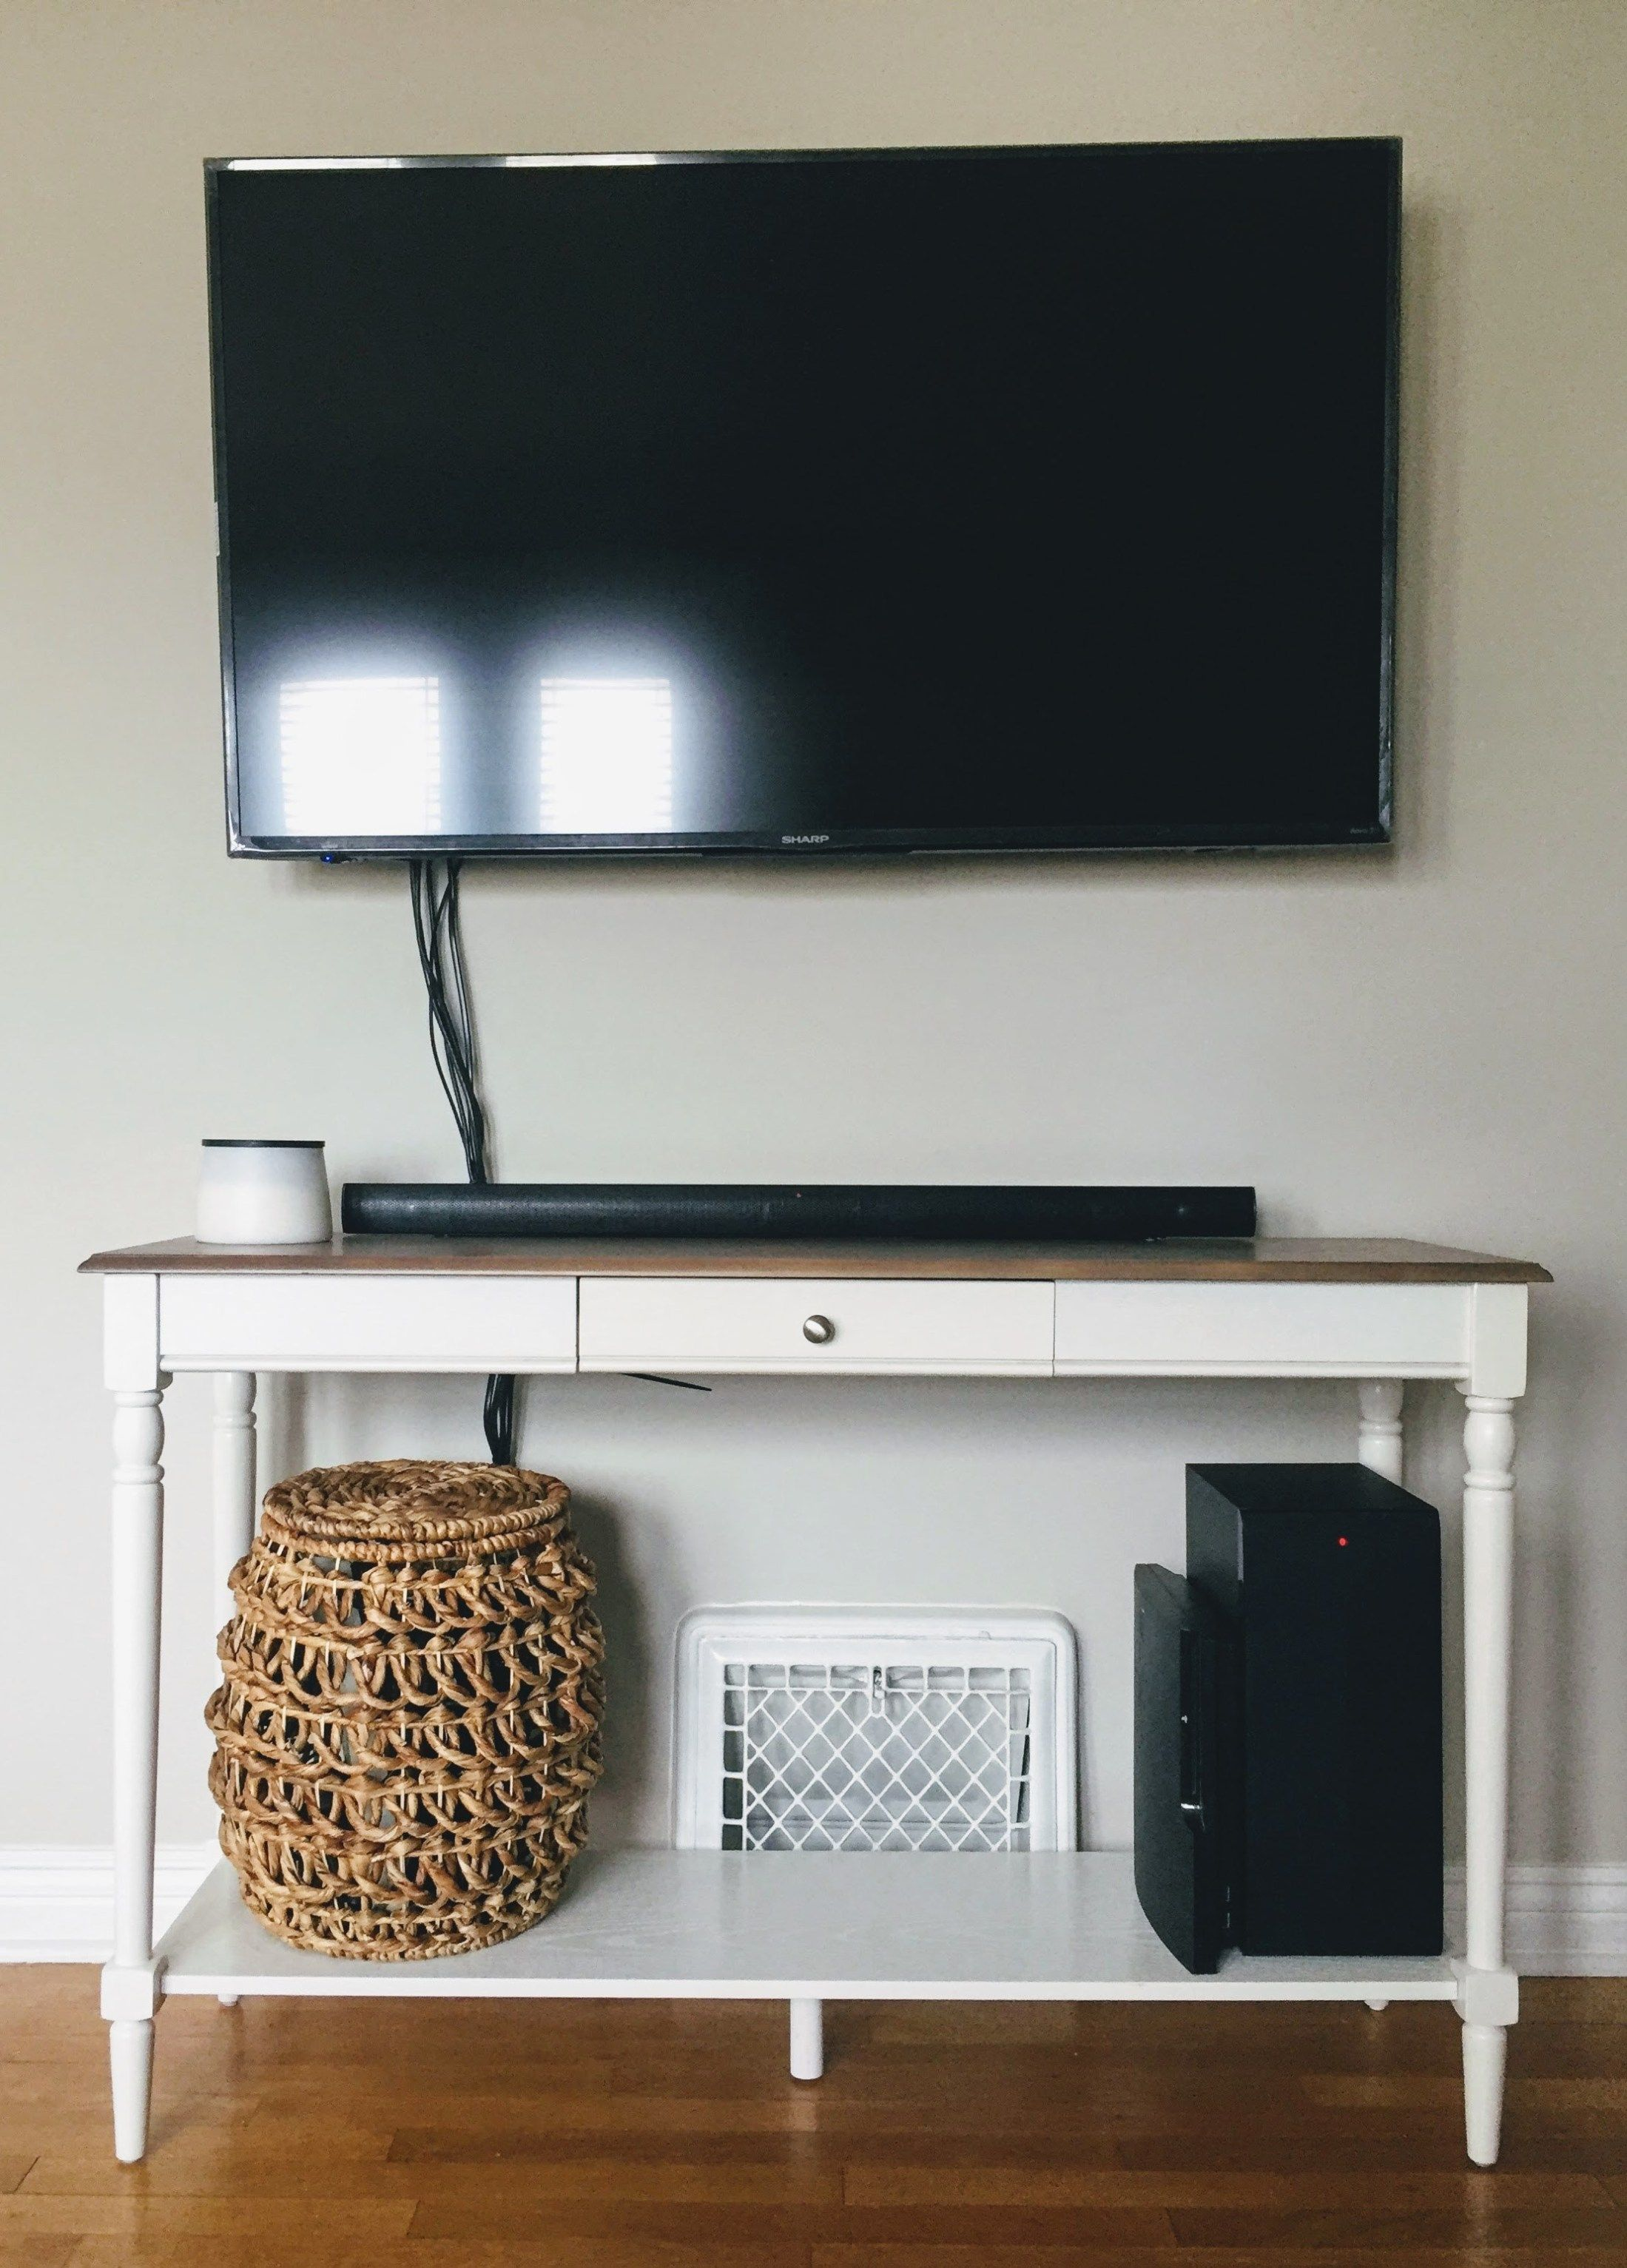 How to hide mounted tv cables without drilling into the